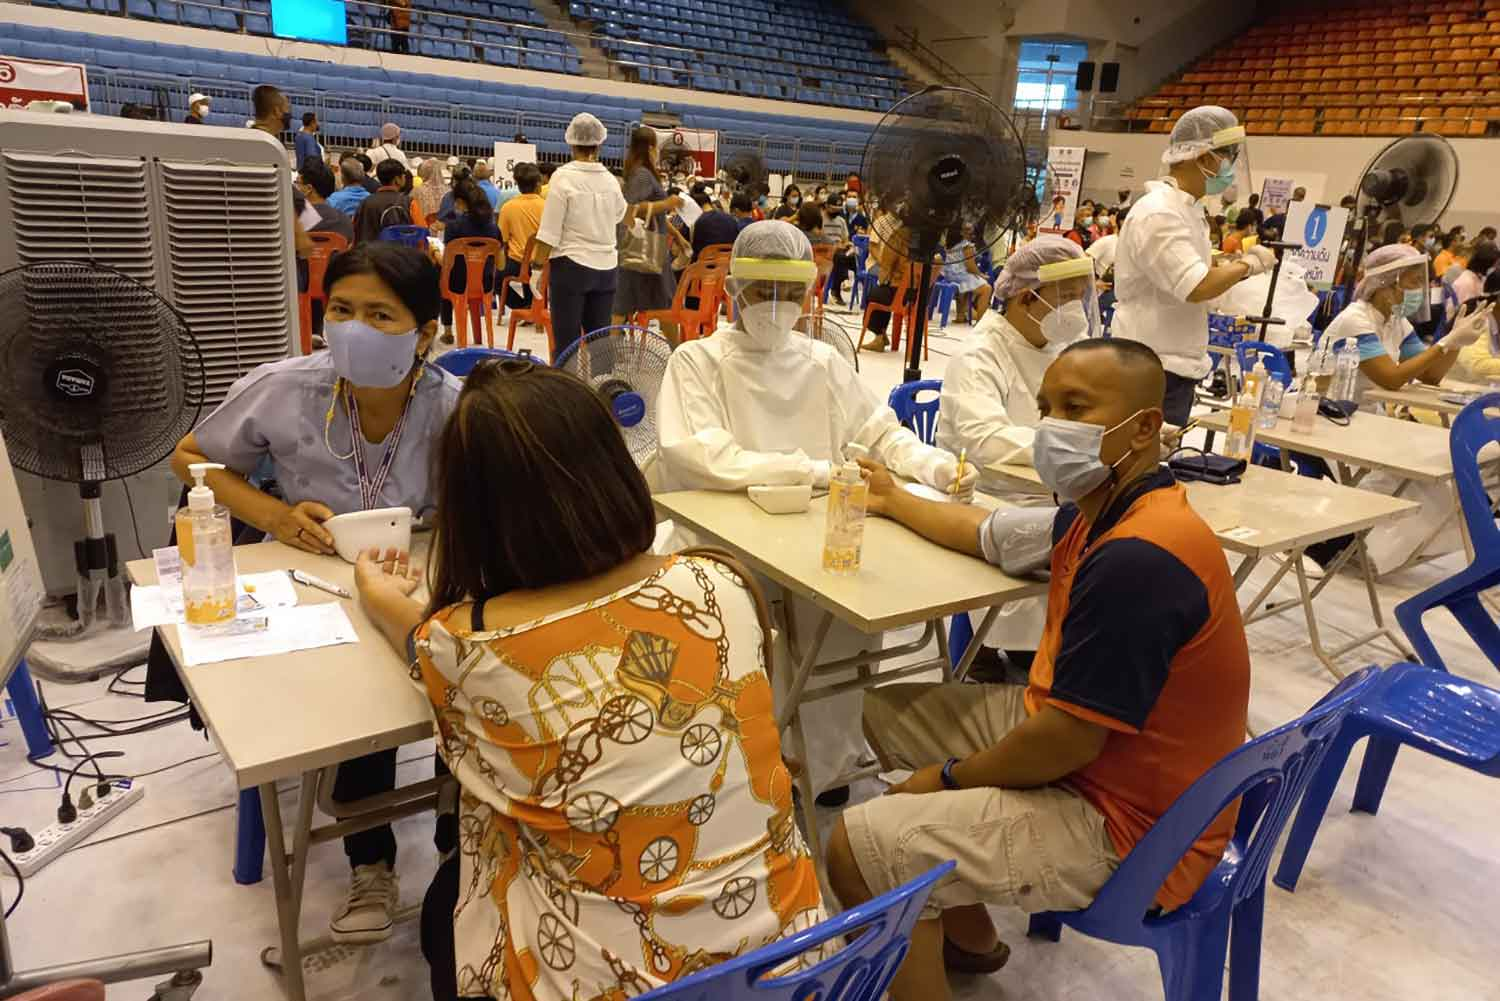 Covid-19 vaccination in Phuket on Thursday. (Photo by Achadtaya Chuenniran)